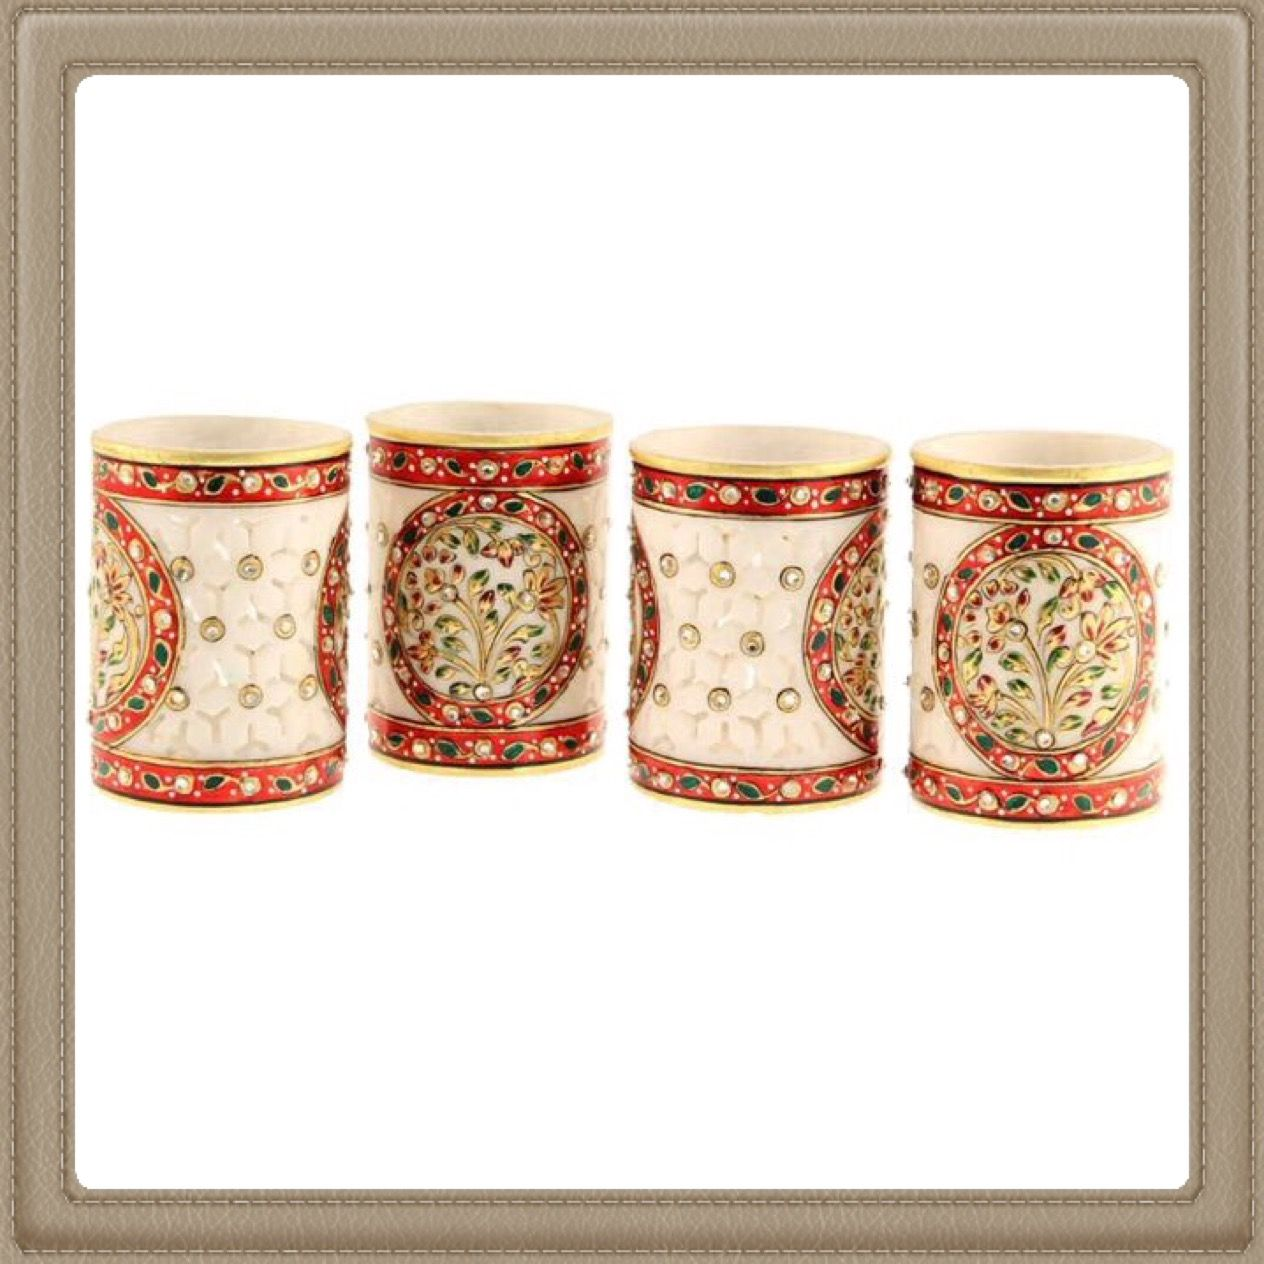 Marble handicraft pen holder. Its a different style of desk organizer. Also can be used to display your cutleries. Great way to draw attention to the table with its enchanting rajasthani work on marble.